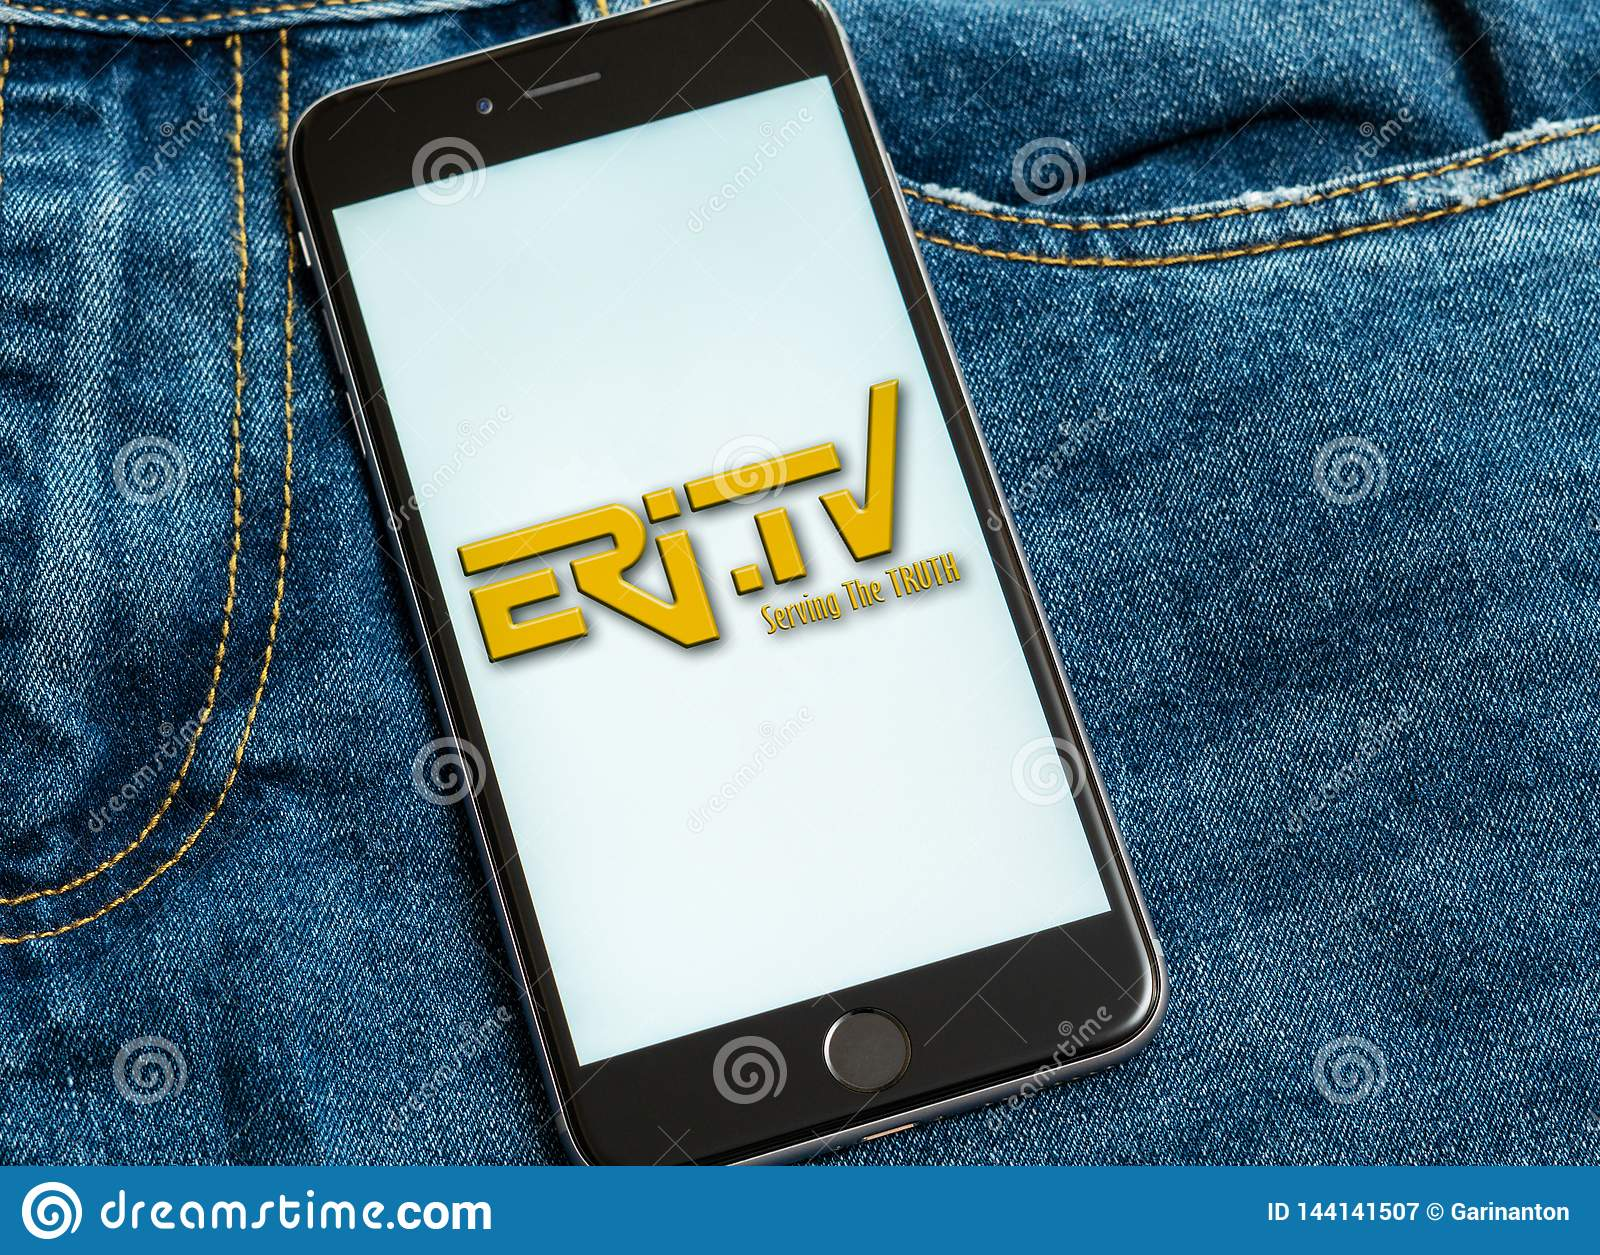 Black phone with logo of news media Eritrean Television Eri-TV on the screen.